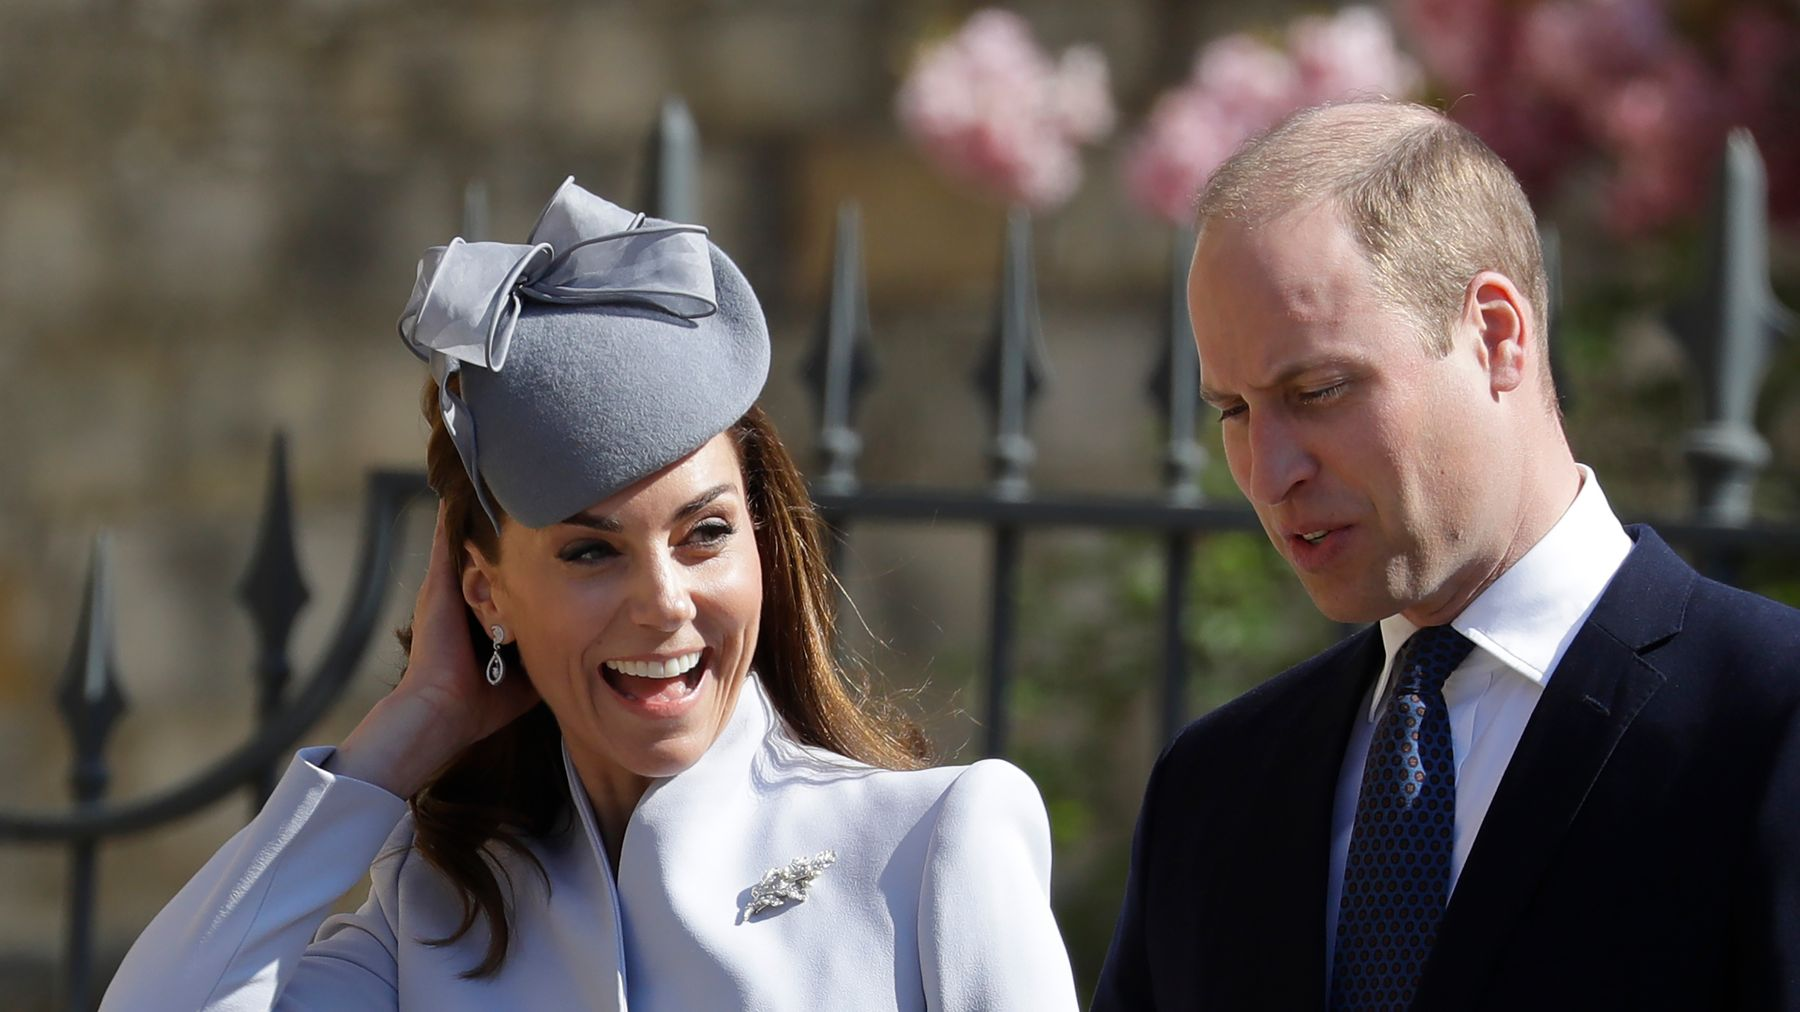 303a561fbc0 The Surprising Etiquette Behind Kate Middleton s Coats. This is why we  never see her take them off